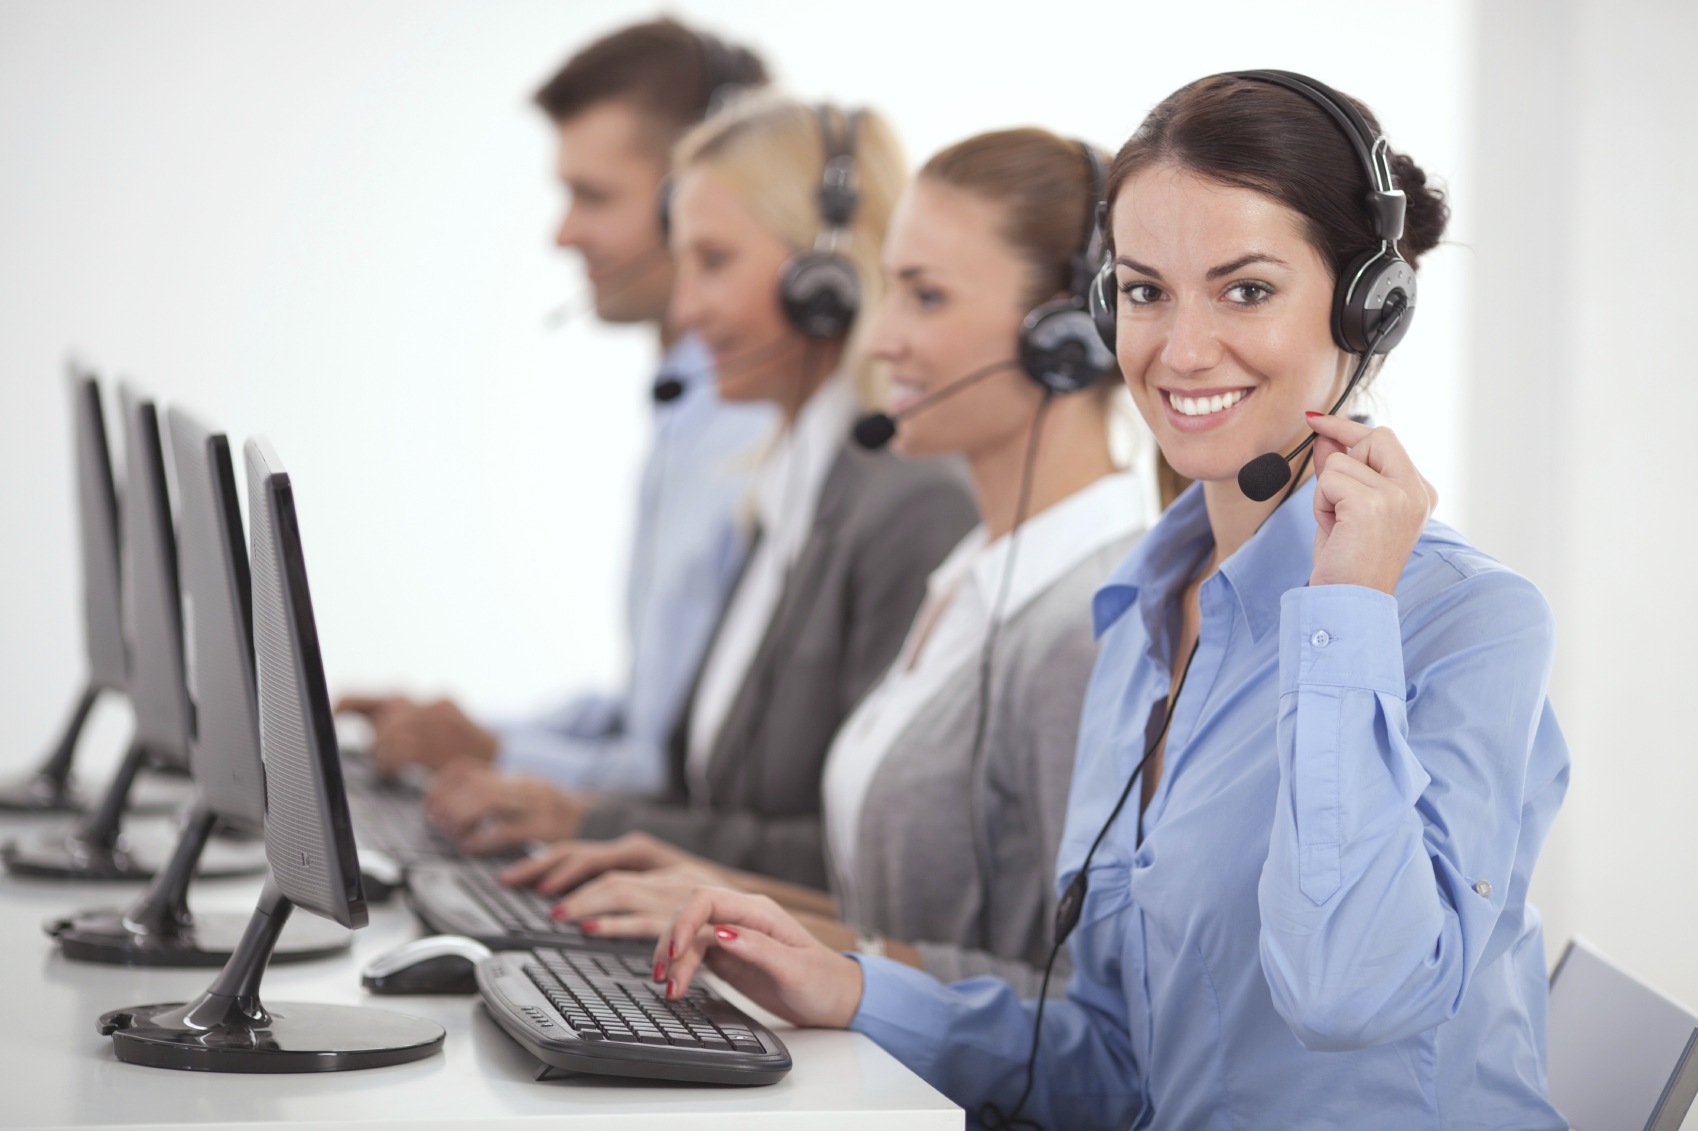 telemarketing essays A look at the ethics of telemarketing in the business world.